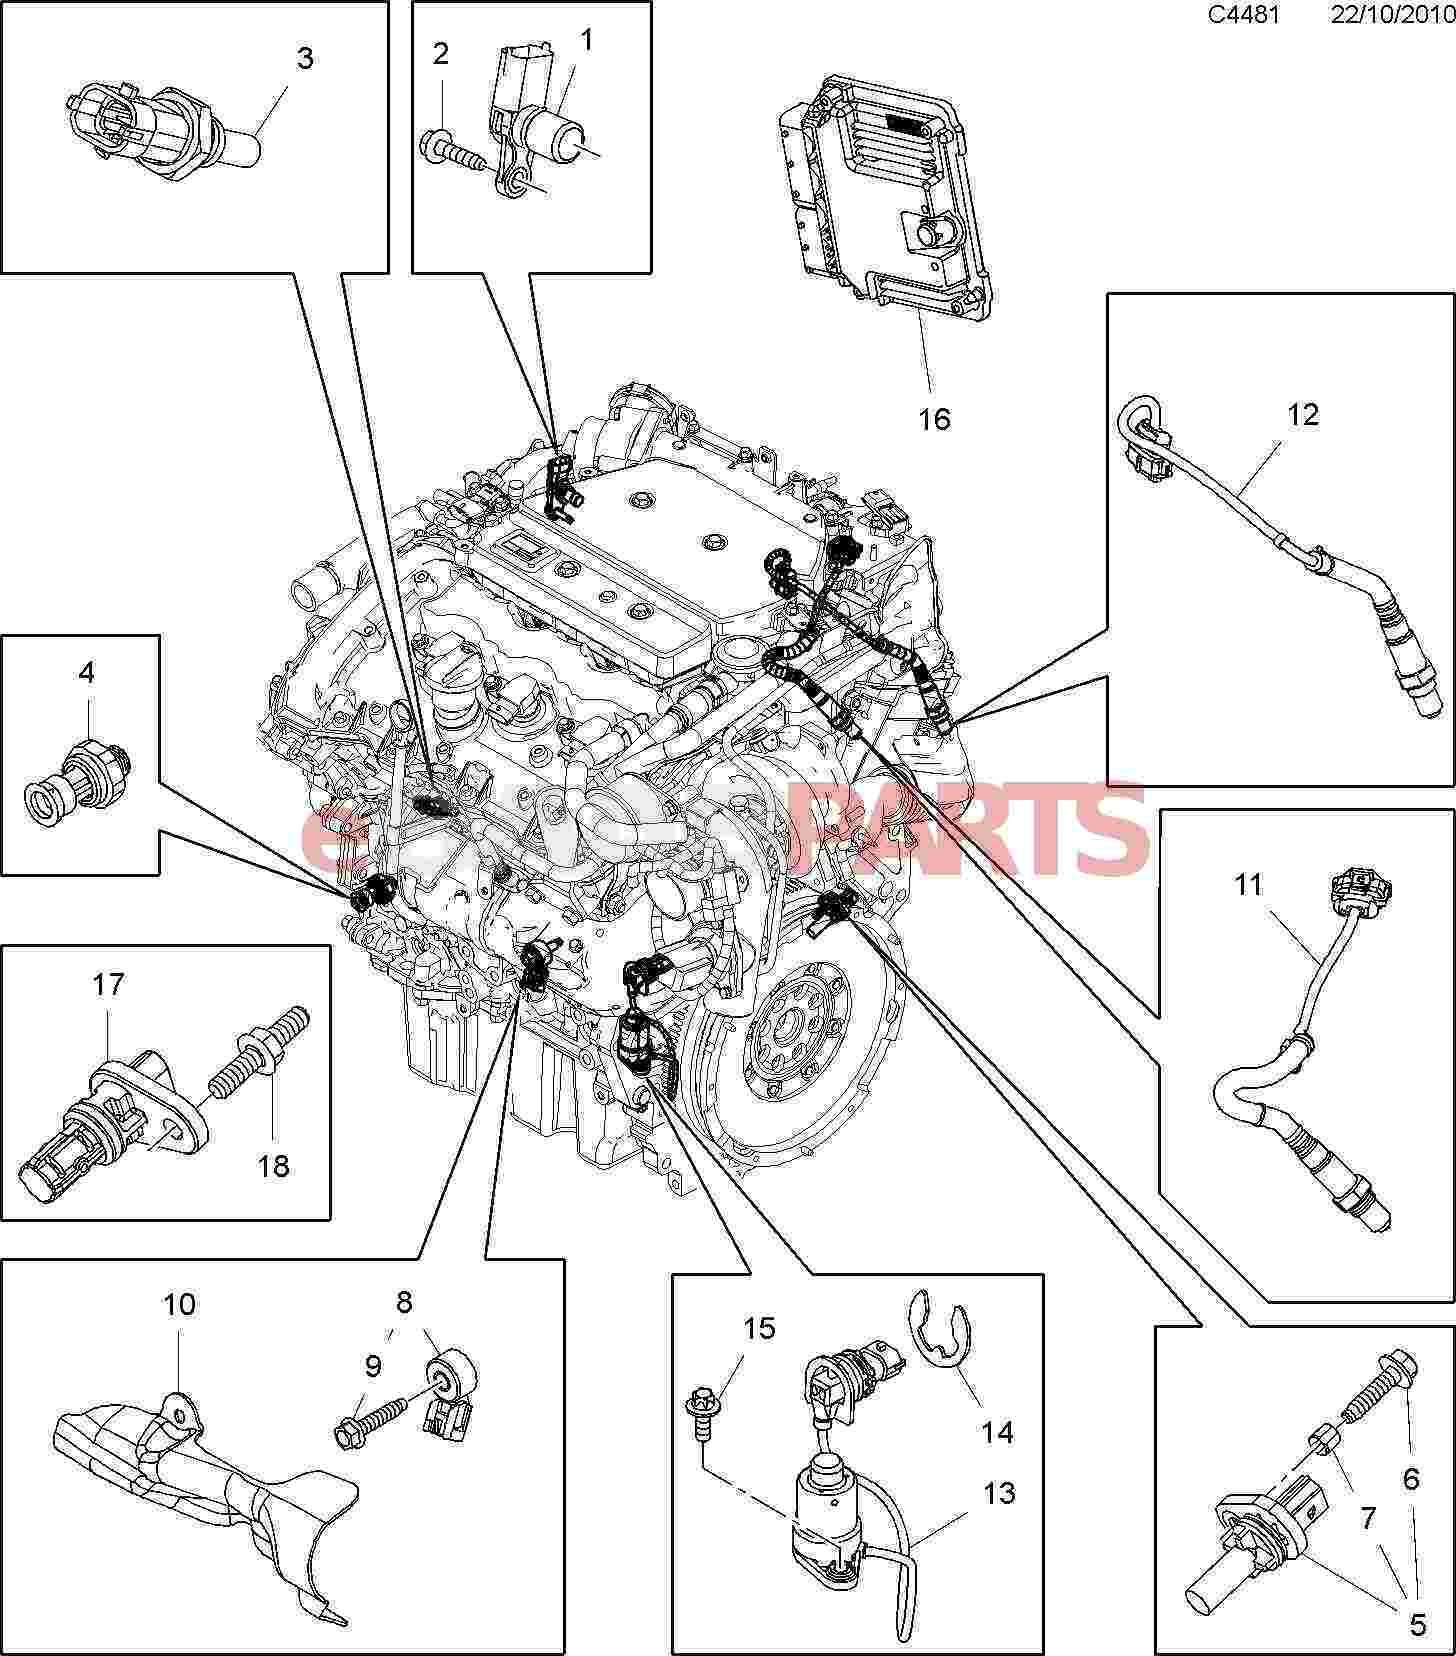 saab engine diagram schematics wiring diagrams u2022 rh schoosretailstores  com saab engine diagrams Saab 9 5